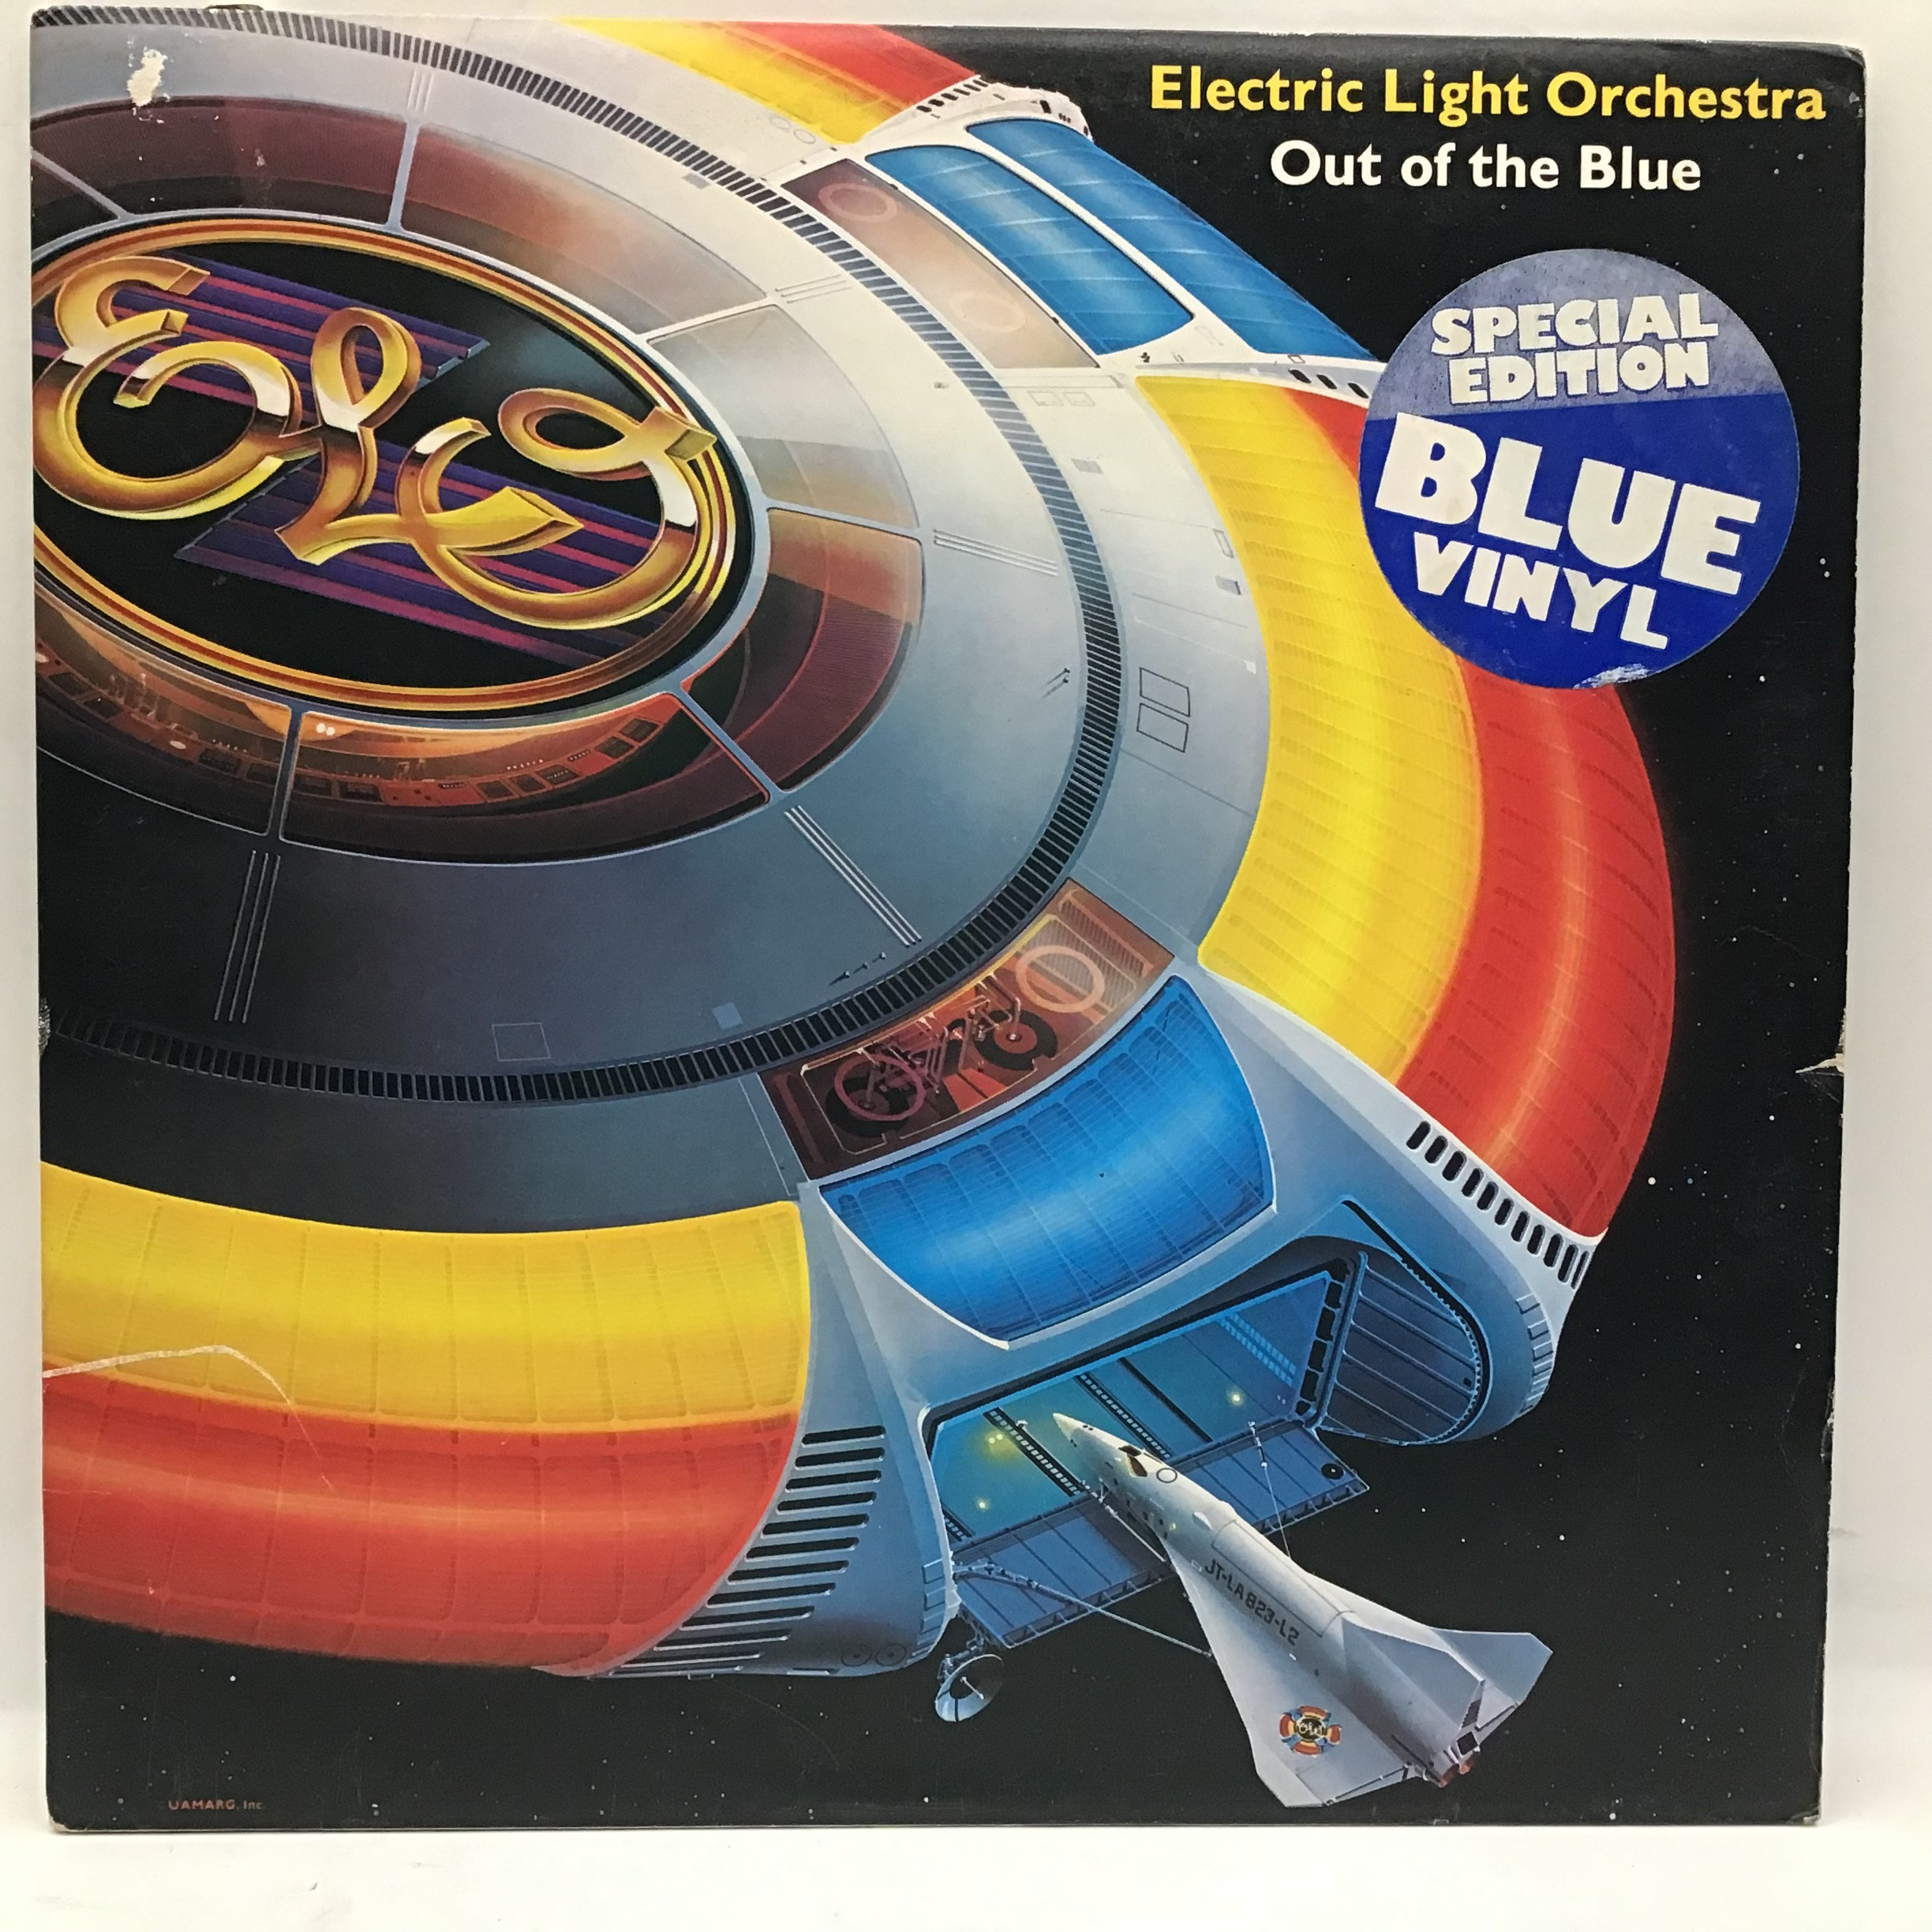 ELECTRIC LIGHT ORCHESTRA (ELO) 'Out Of The Blue' Blue Vinyl LP. This is a 1977 Release Cat No. JETDP